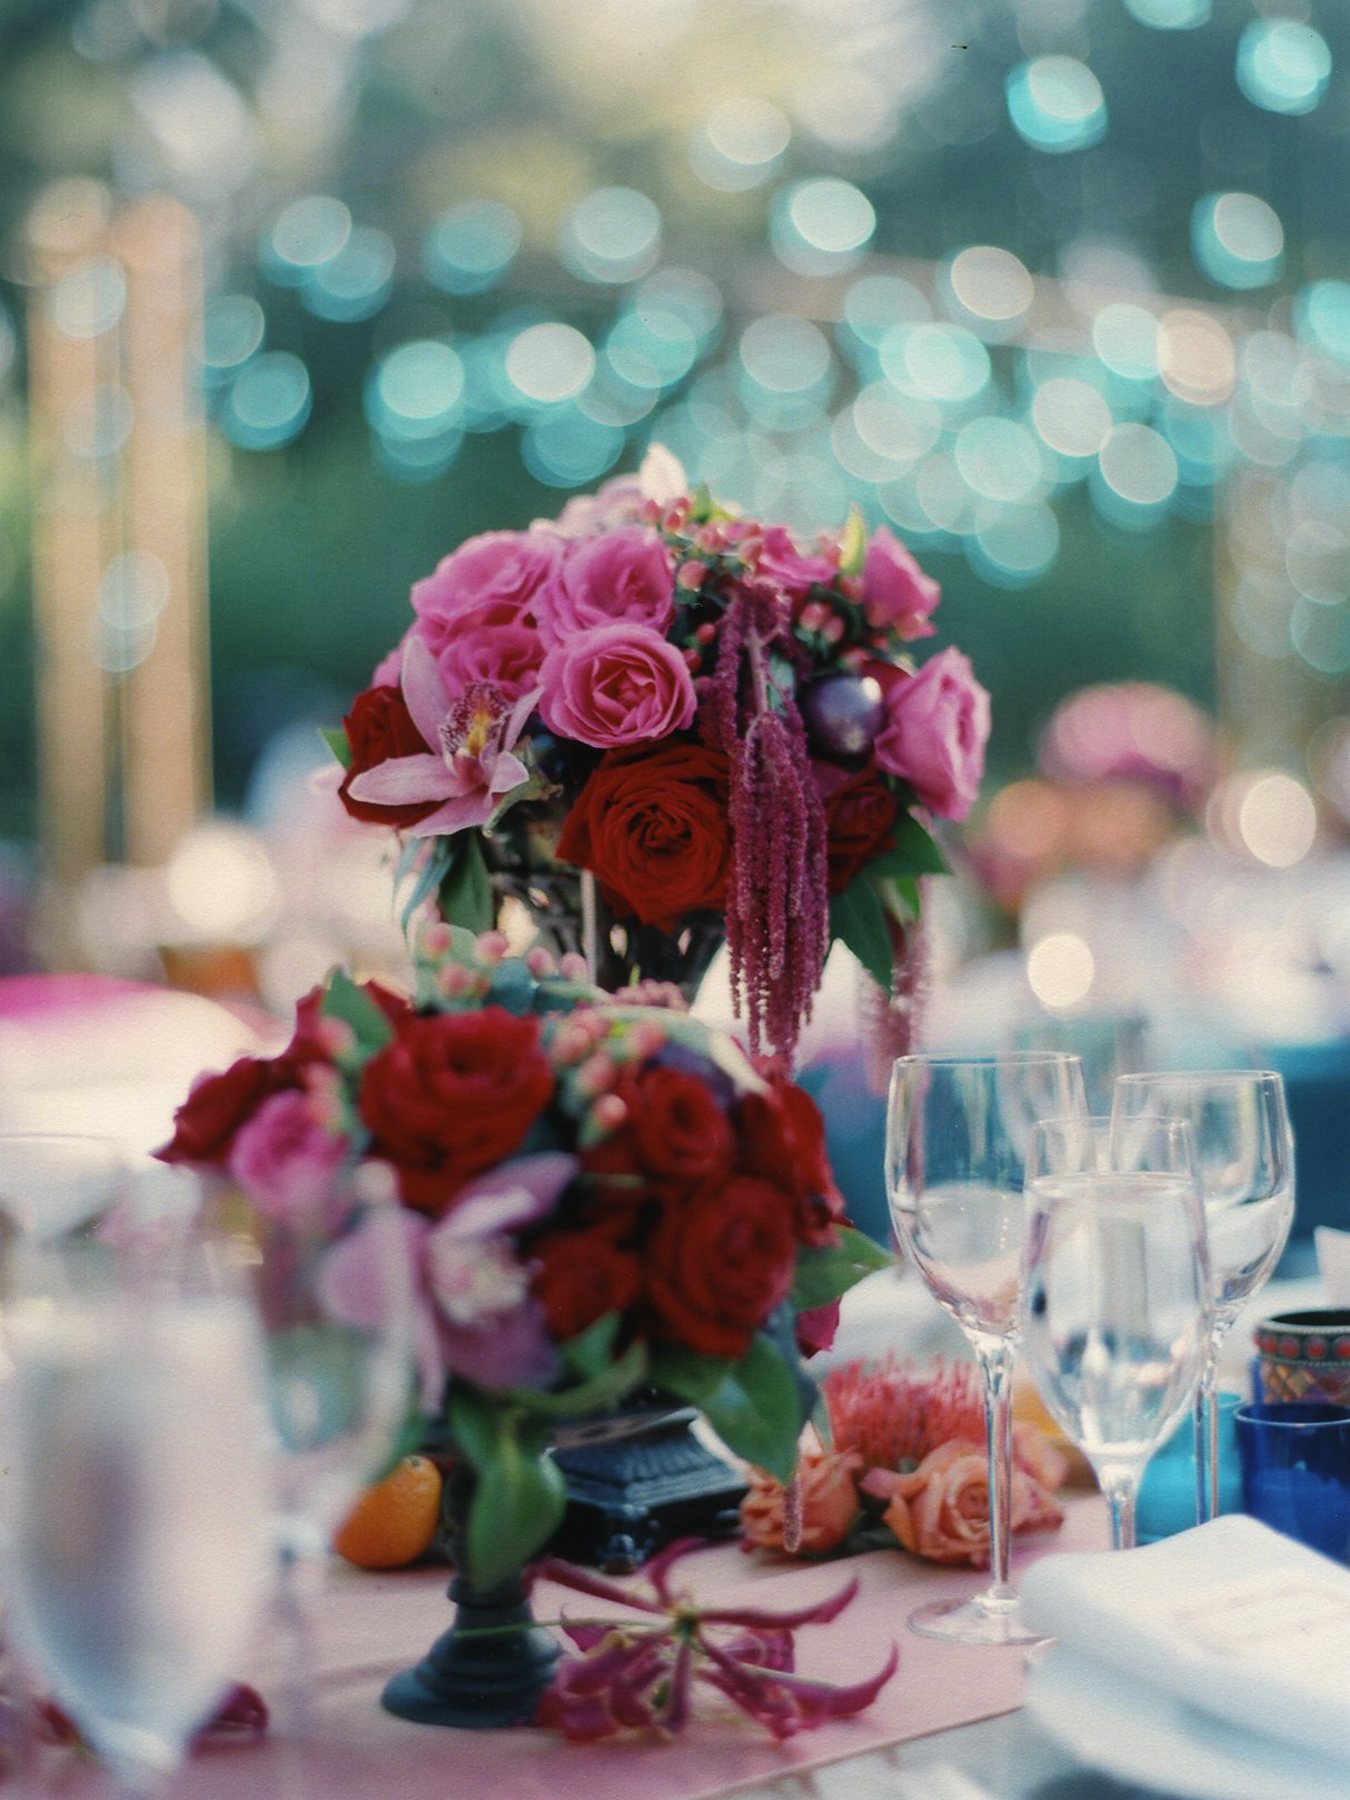 Flowers & Decor, pink, red, gold, Centerpieces, Flowers, Centerpiece, Wedding, Indian, Mexican, Multicultural